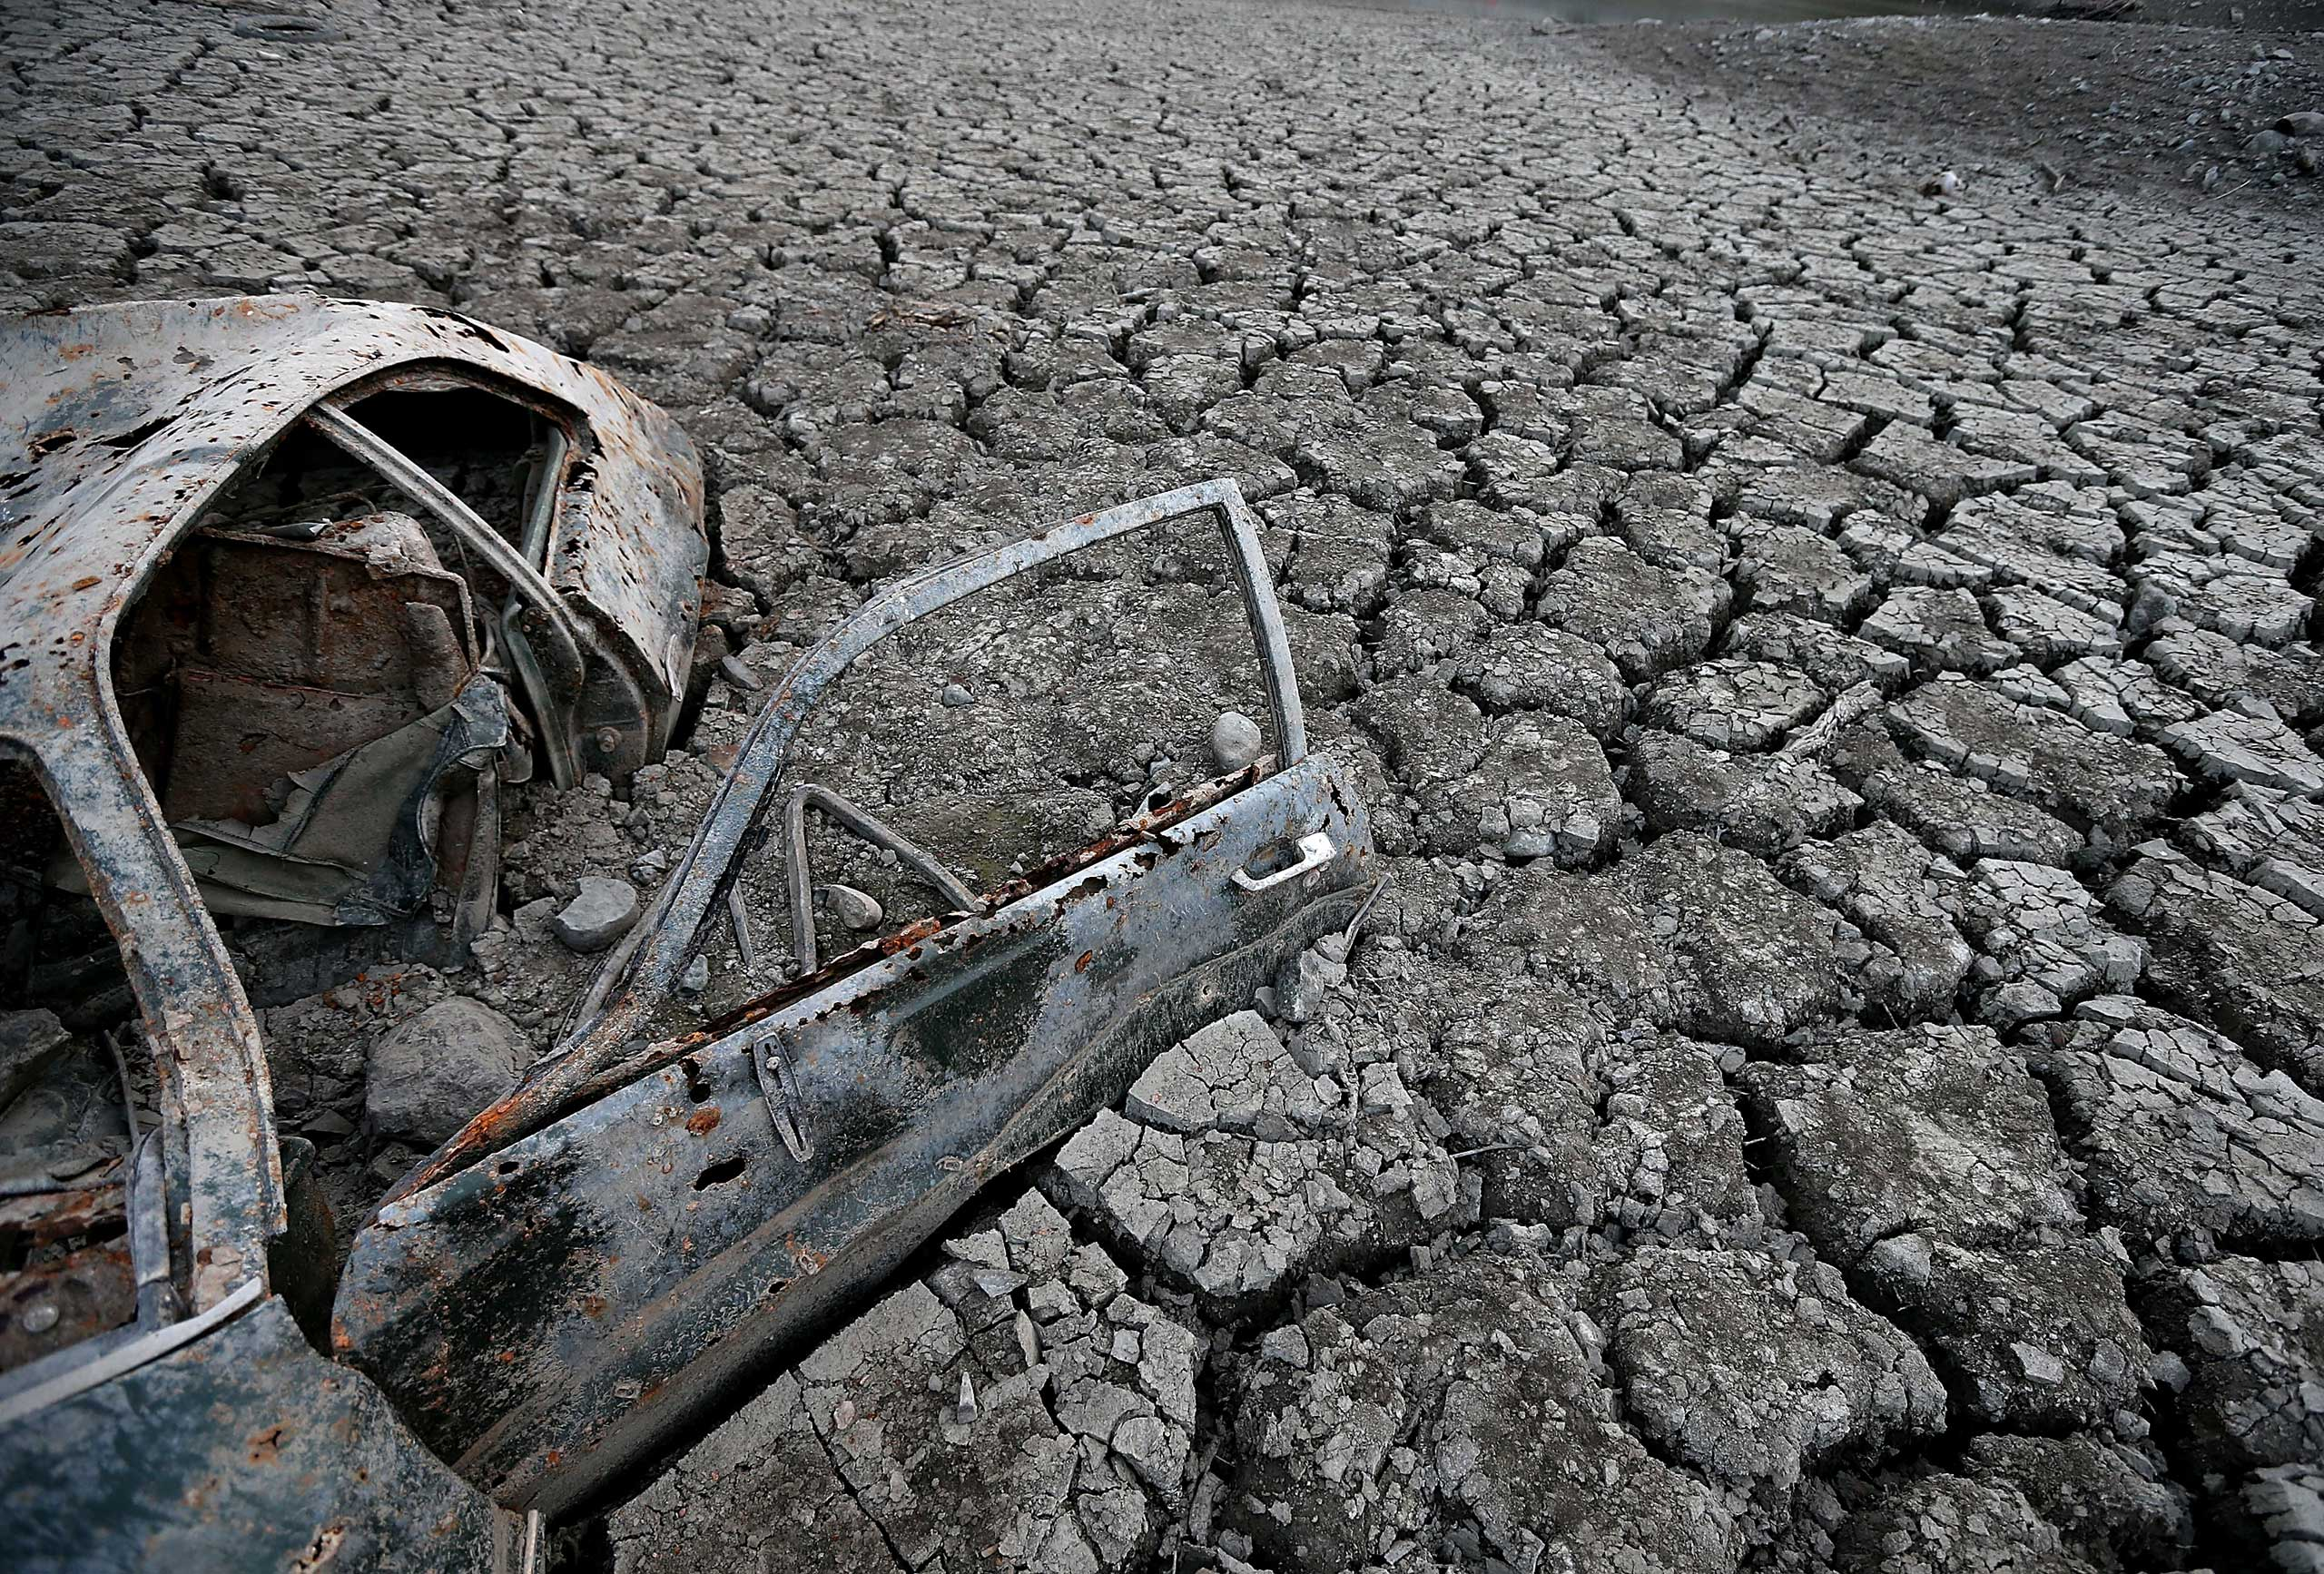 <b>California Drought</b> A car sits in dried and cracked earth of what was the bottom of the Almaden Reservoir in San Jose, Calif. on Jan. 28, 2014.